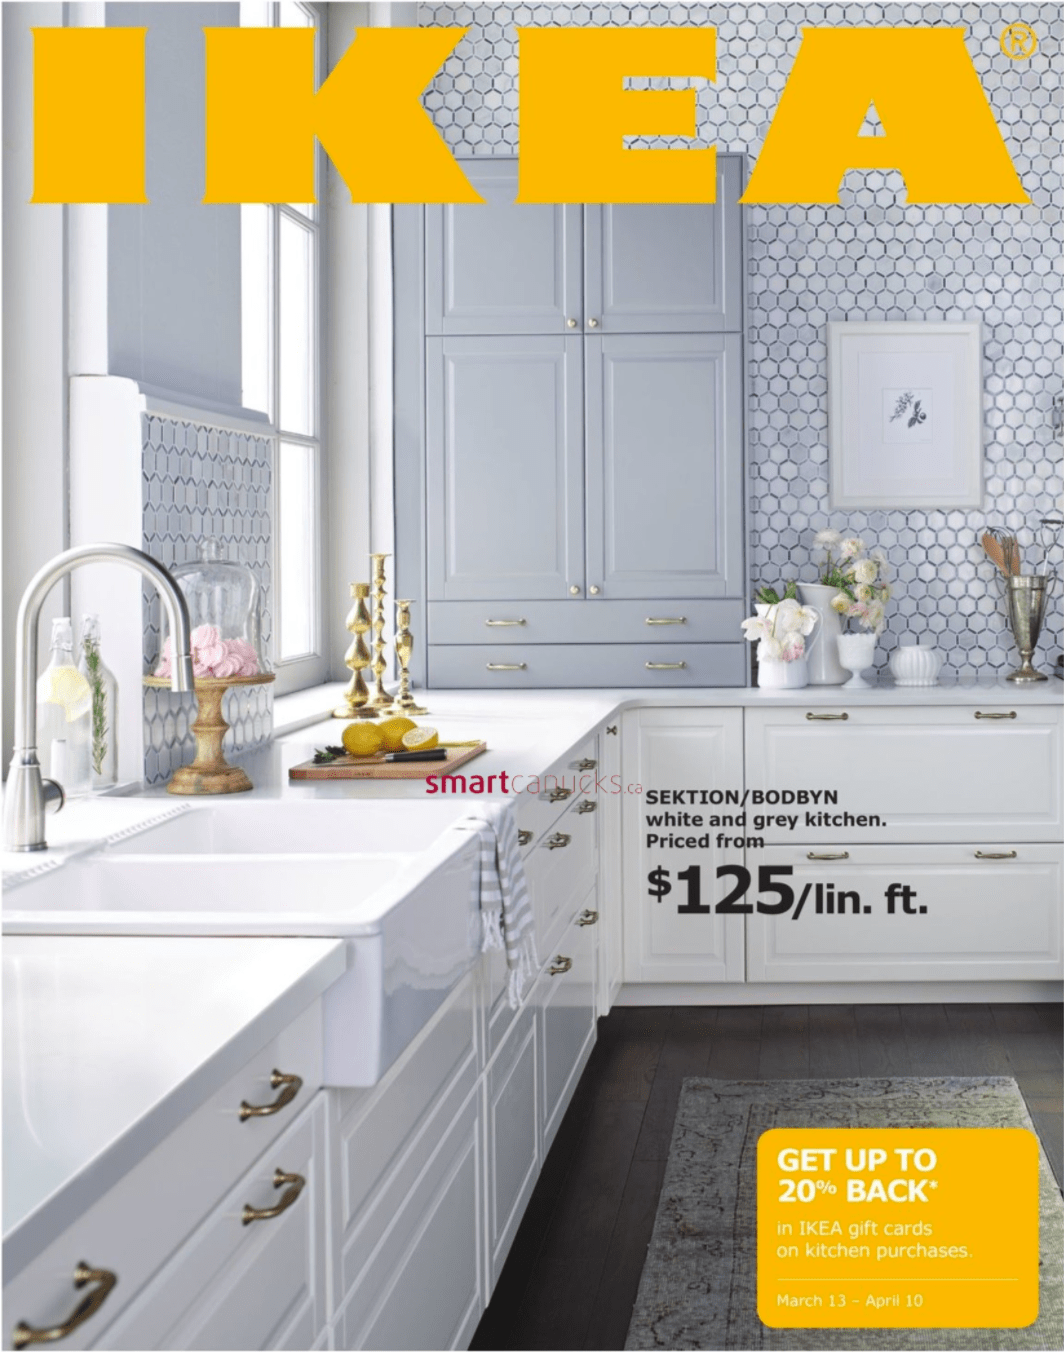 IKEA Canada Kitchen Event: Receive Up To 20% Back in IKEA Gift Cards ...